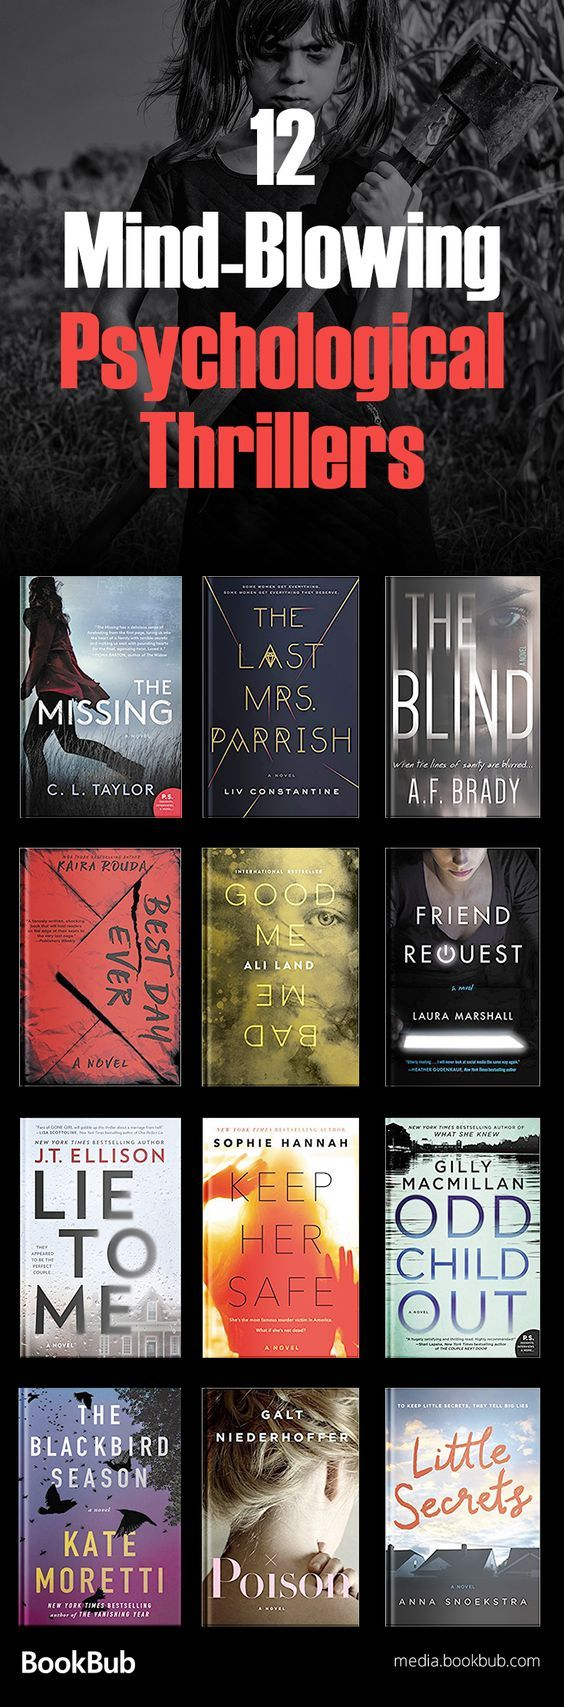 12 psychological thriller books, including a great reading list of thrillers 2017. Featuring suspense, twists, mystery and more.